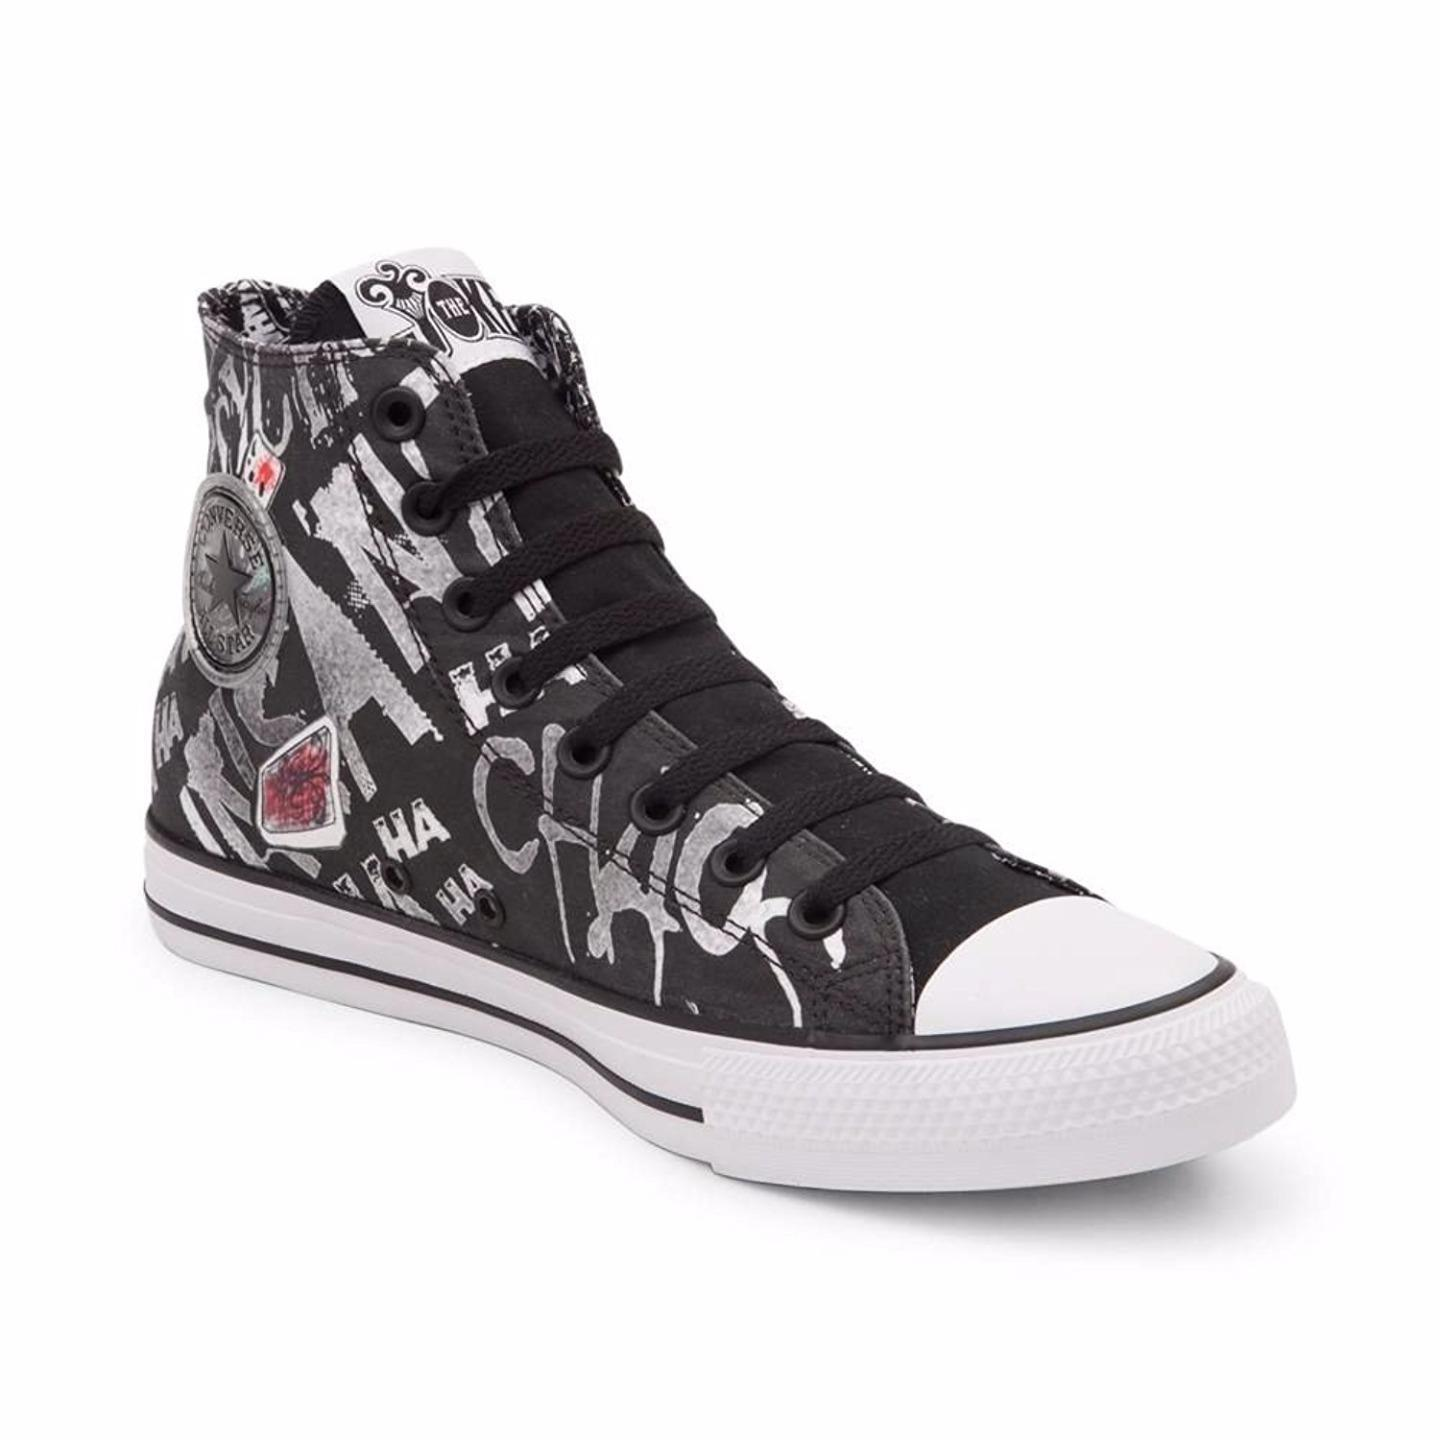 b66ceddd9a2717 Converse DC Comics The Joker Laugh Sneakers Suicide Squad Batman Villain  154789C